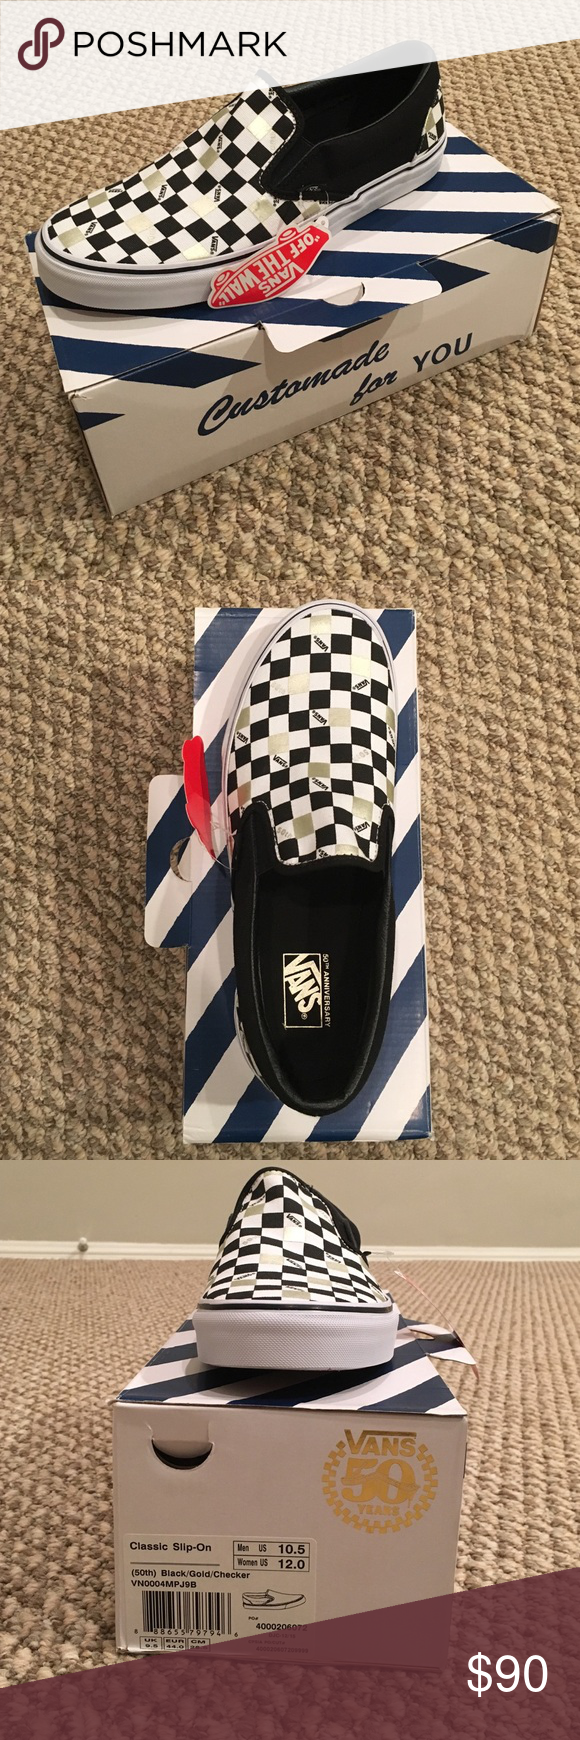 6276f95b26 RARE vans 50th anniversary slip on shoes Limited edition vans and brand new  with tags! Receipt available. hmu if you have any questions also very open  to ...